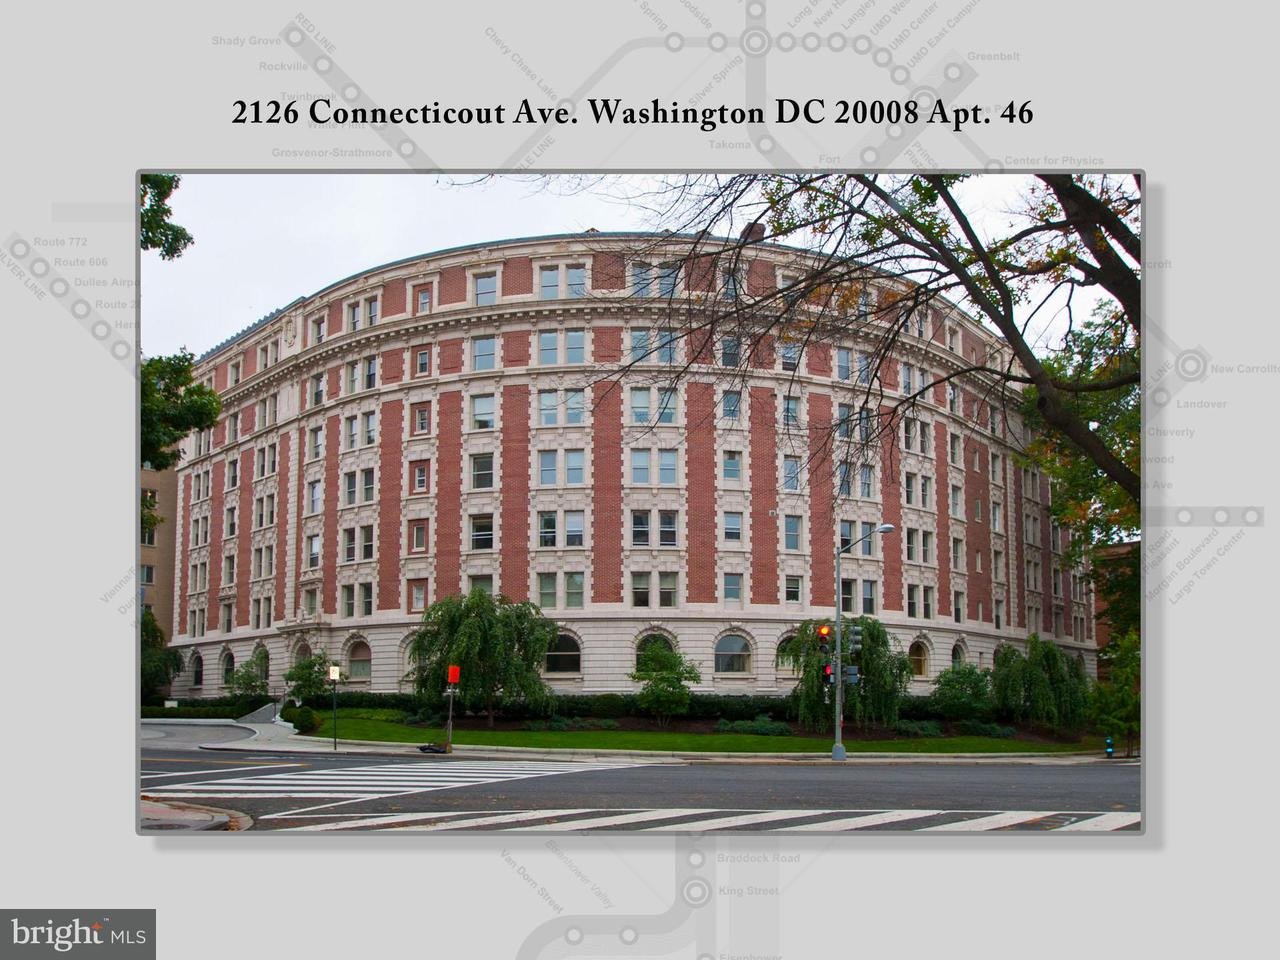 Single Family Home for Sale at 2126 CONNECTICUT AVE NW #46 2126 CONNECTICUT AVE NW #46 Washington, District Of Columbia 20008 United States